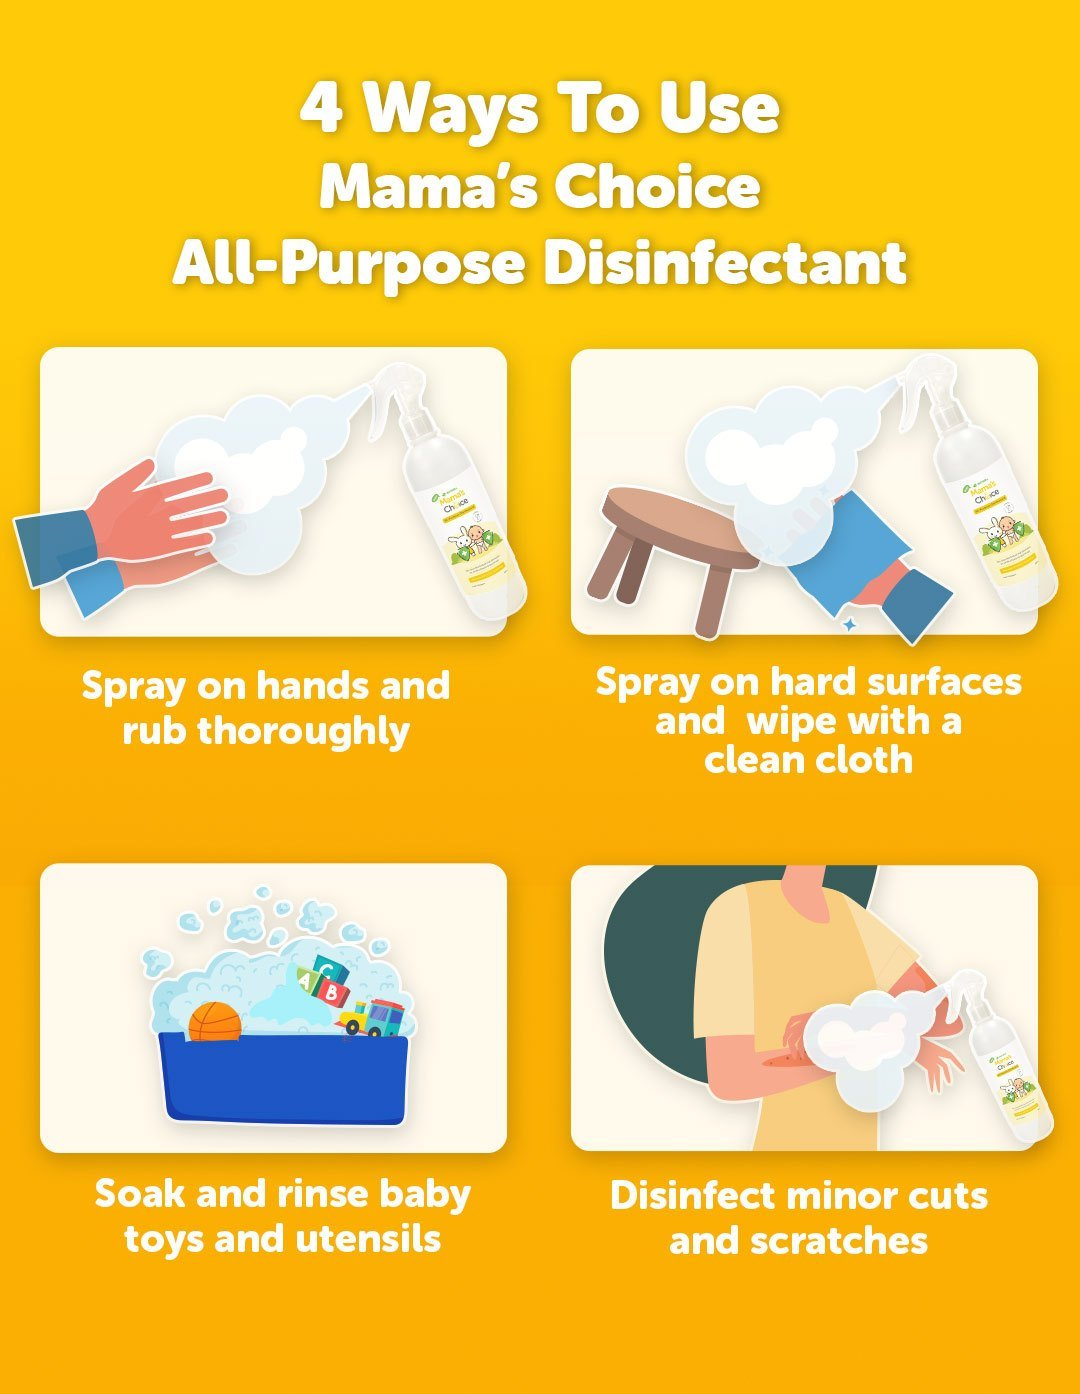 Ways to use Mama's Choice All-Purpose Disinfectant